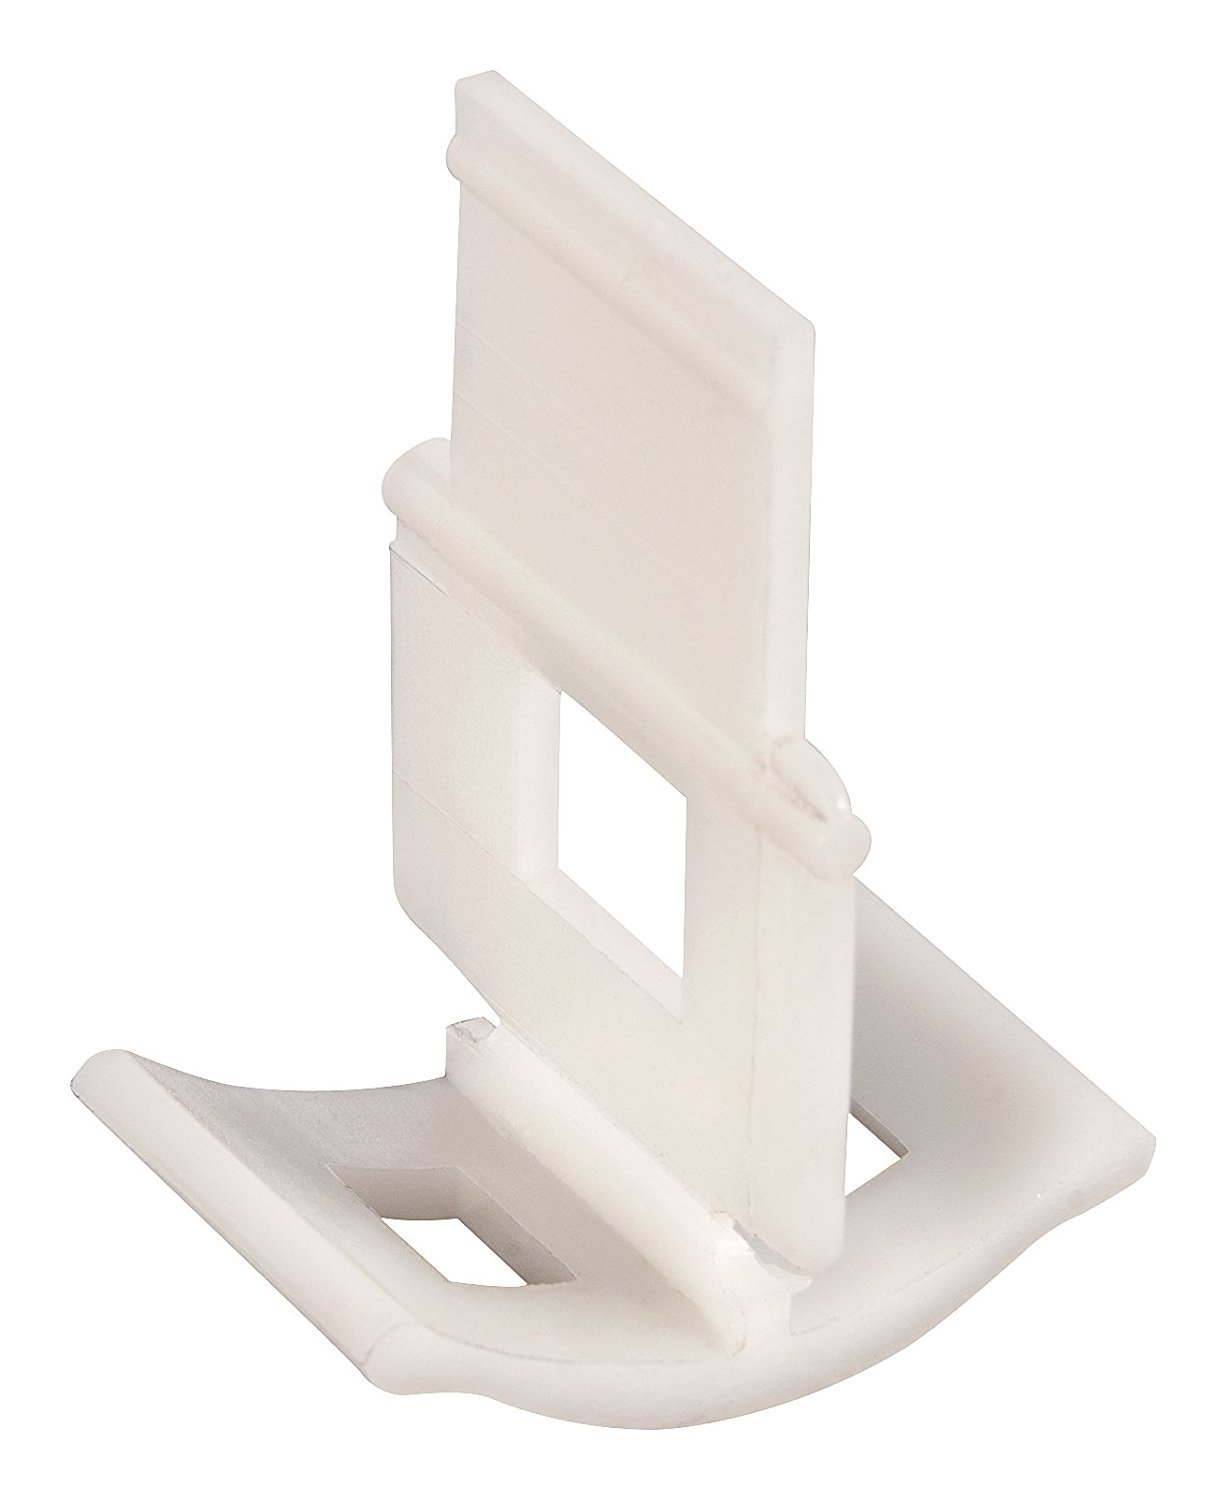 Tile Aligning Tile Leveling Spacer Clips, 100-Pack. Lippage free tile installation for PRO and DIY, Wedge not included